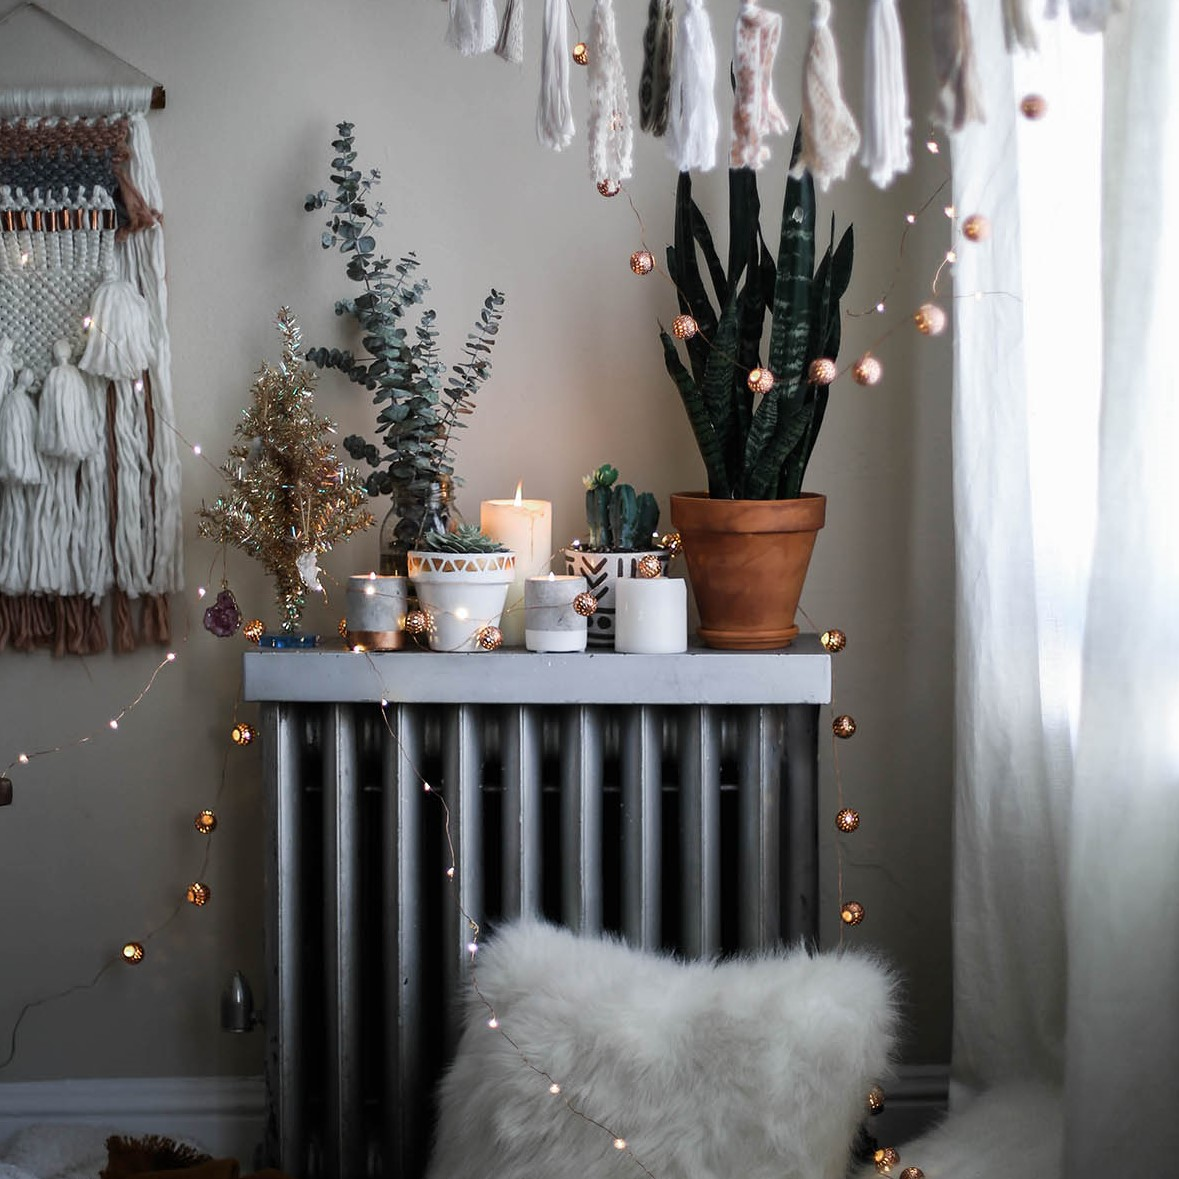 a-cozy-home-for-the-chilly-winter-season-liebe-was-ist-interoir-diy-lifestyle-inspiration-weihnachtlich-winterliche-deko-ideen-4